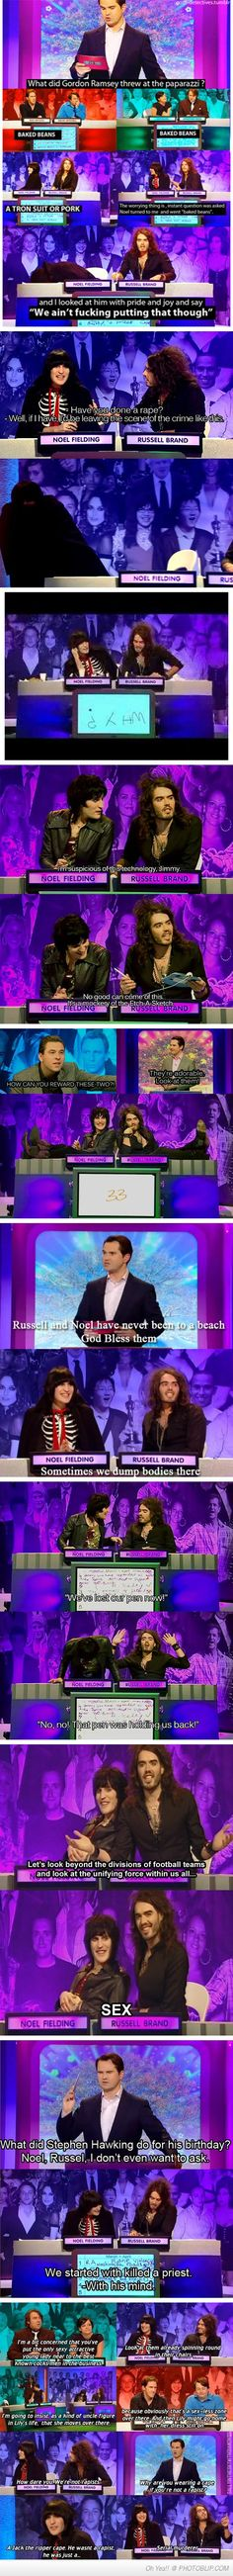 Noel Fielding & Russell Brand. These pair craic me up